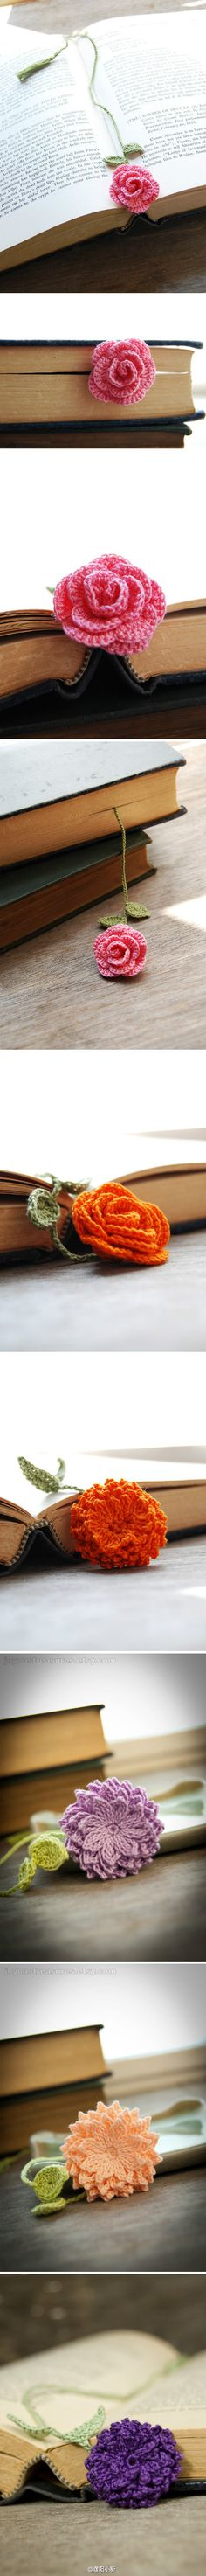 Pretty bookmarks - crochet flowers (but no pattern that I can see).